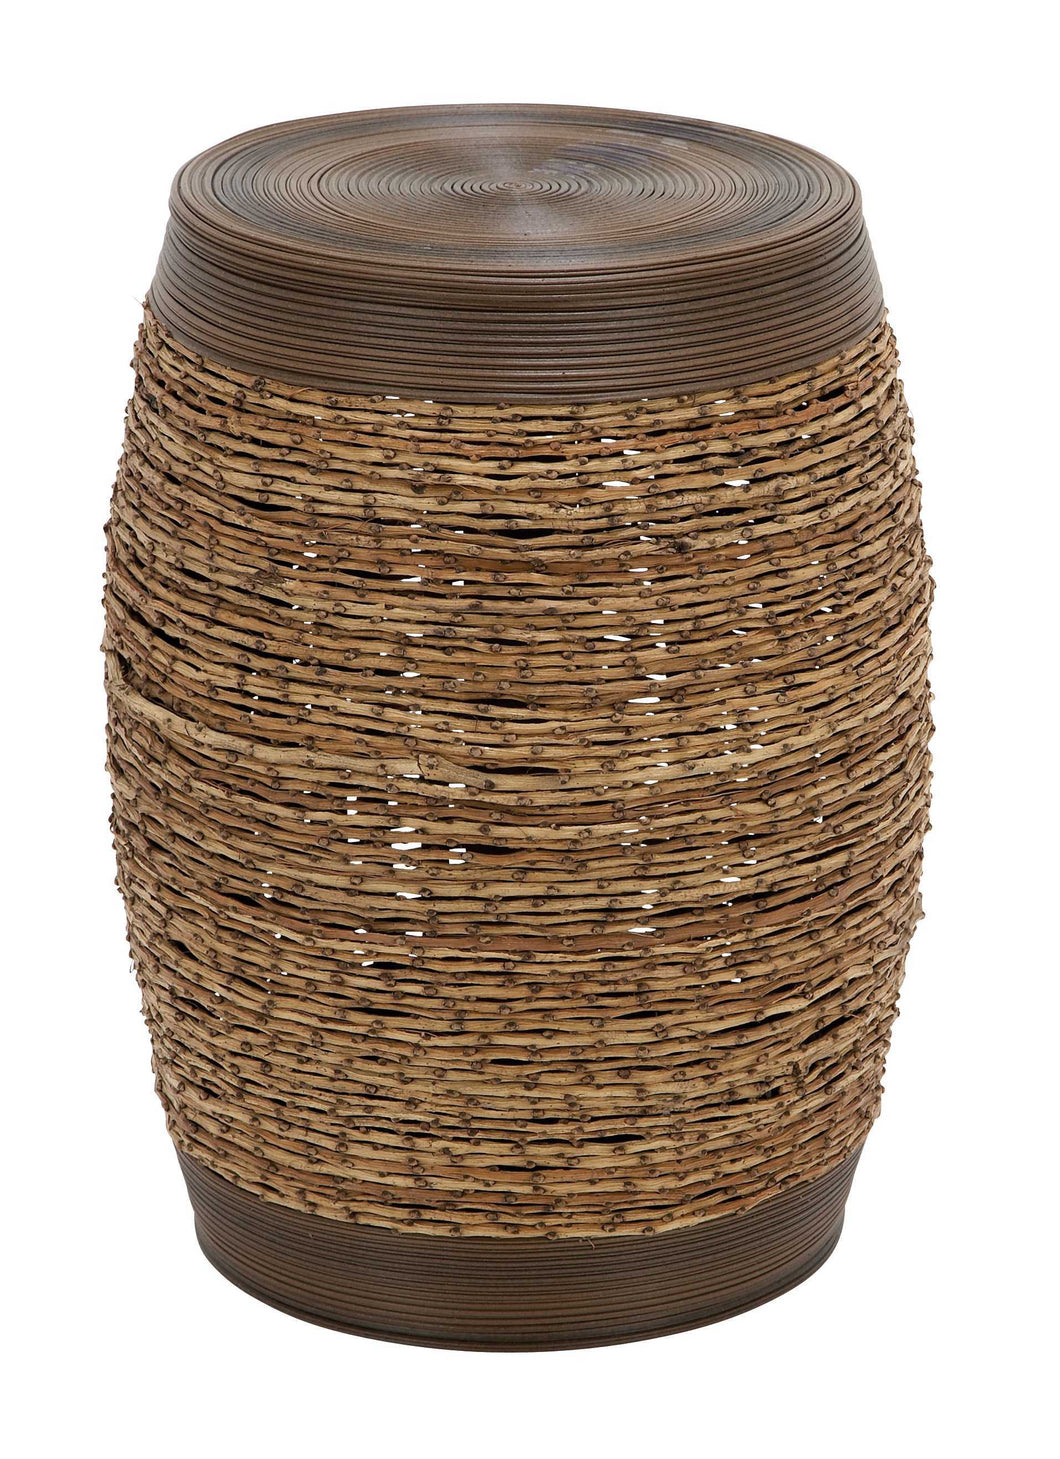 Bamboo Weave Stool In Unique Barrel Shape